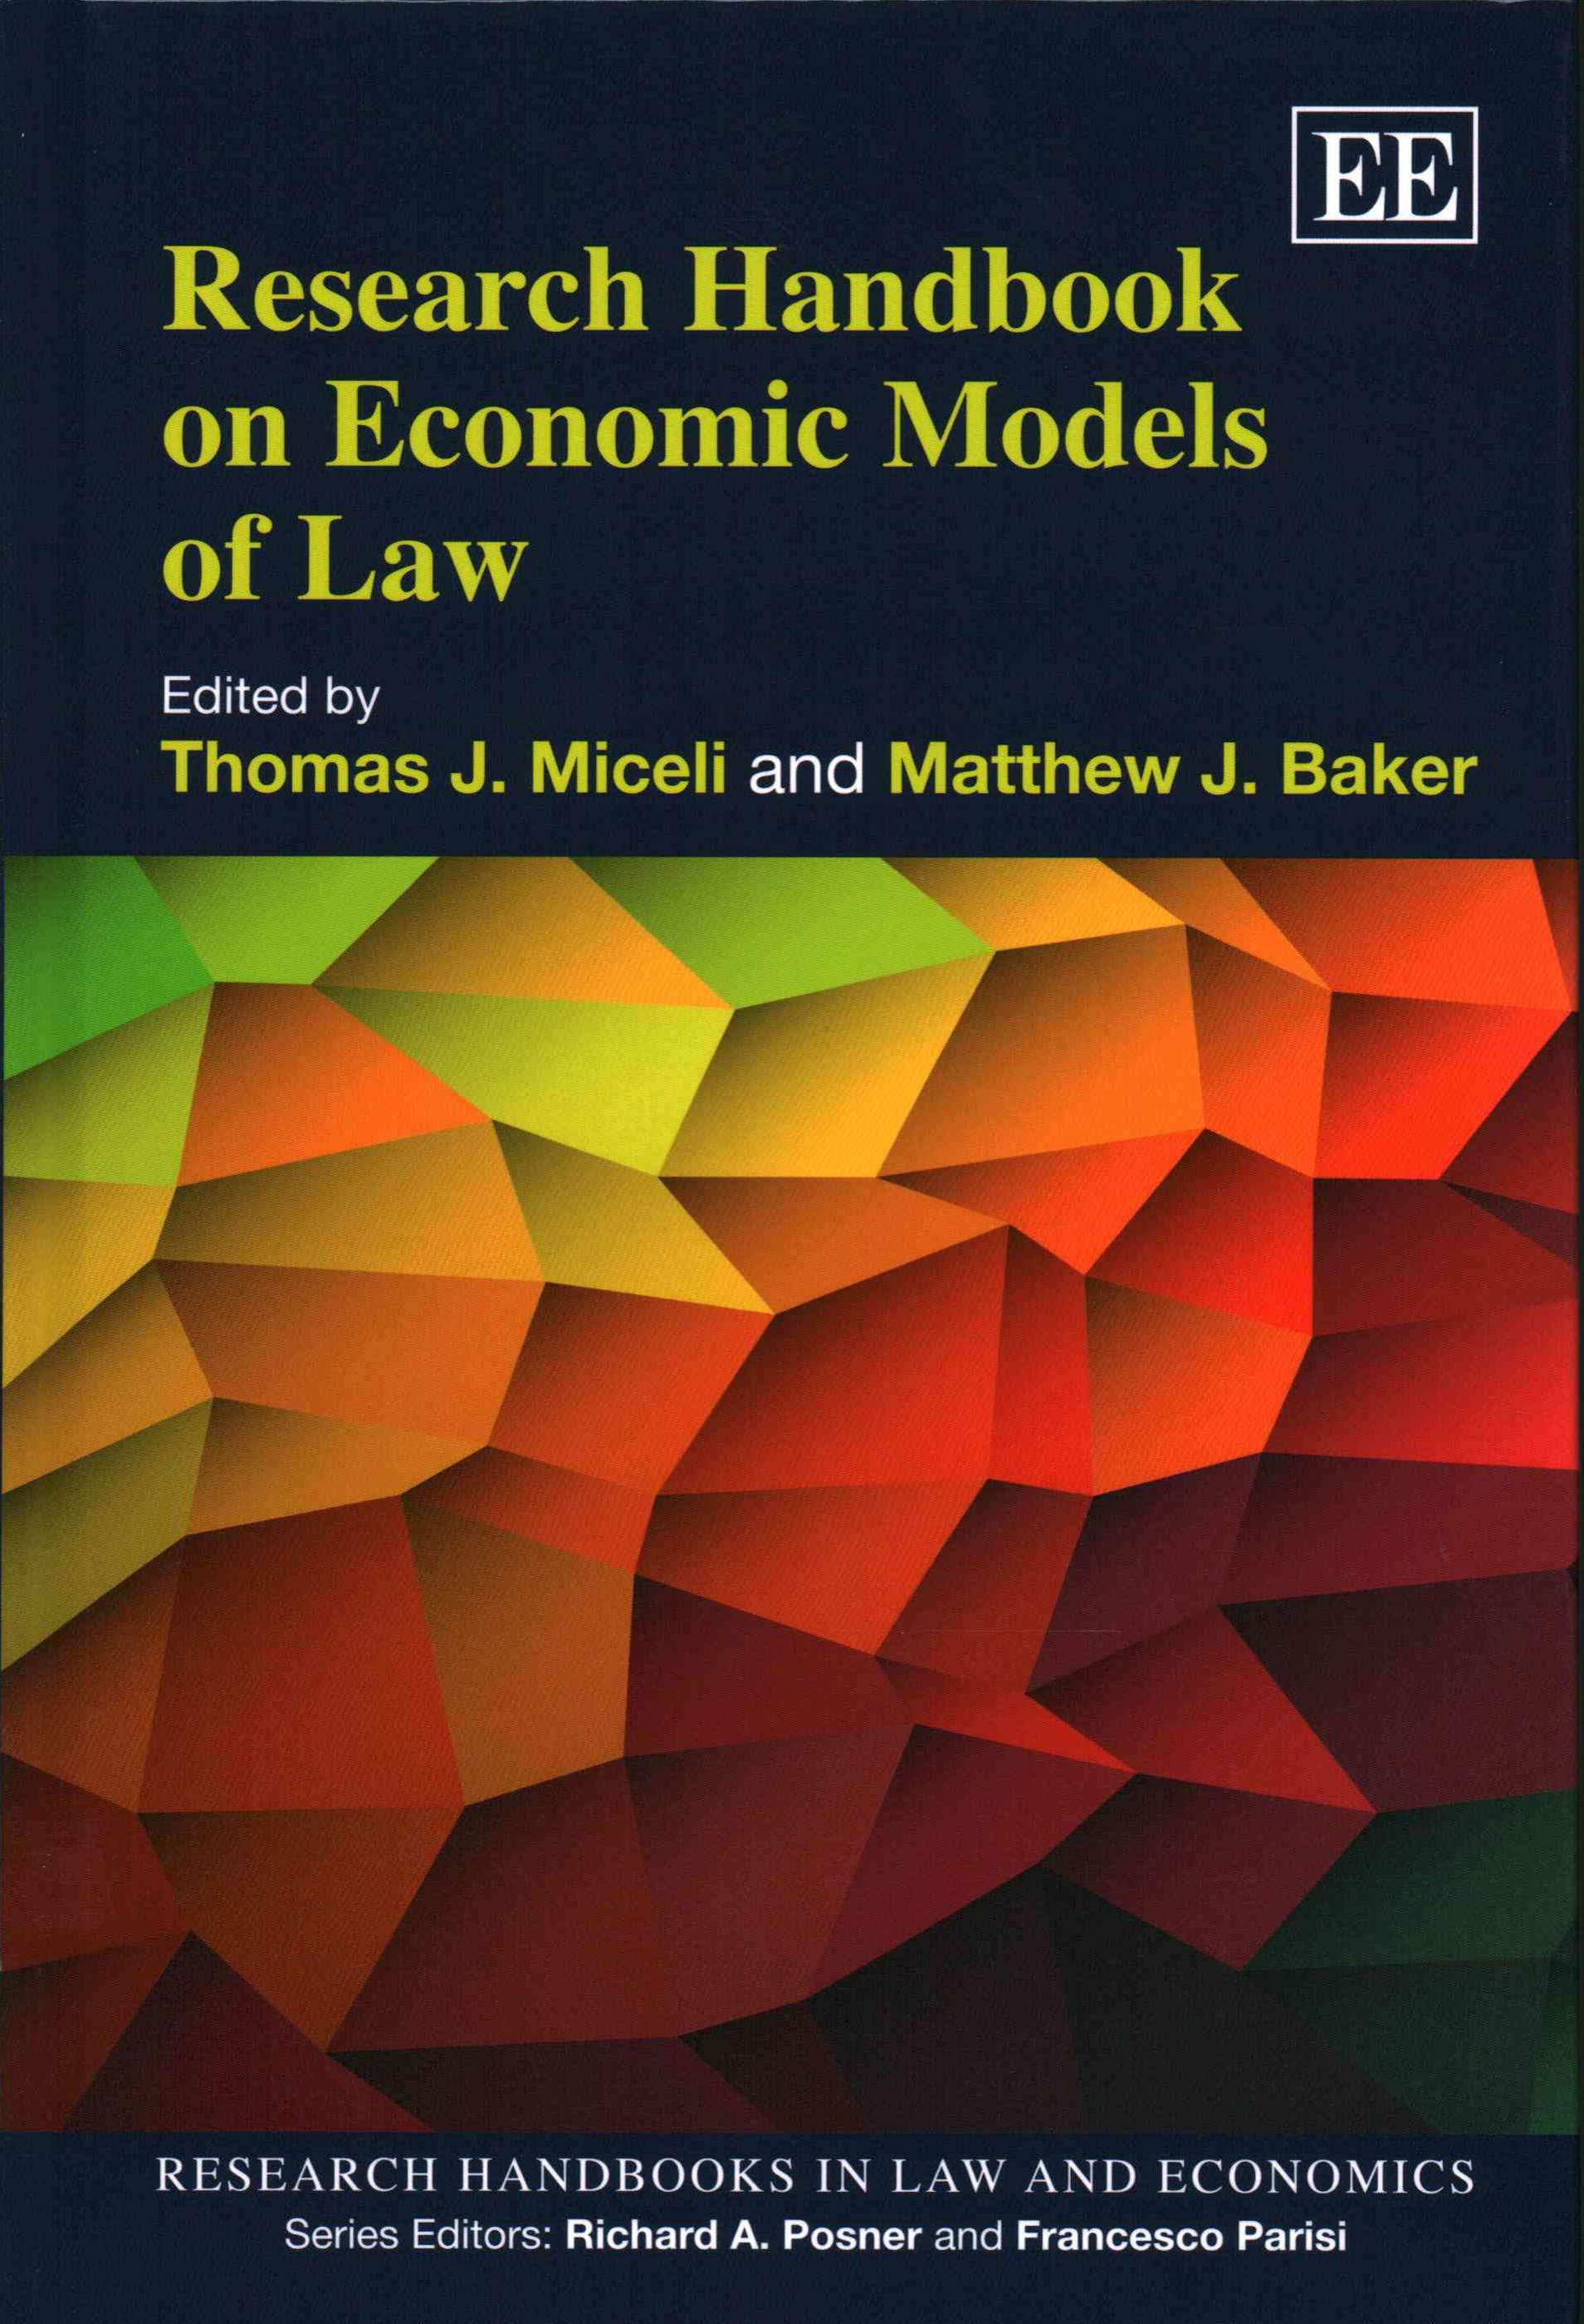 Research Handbook on Economic Models of Law